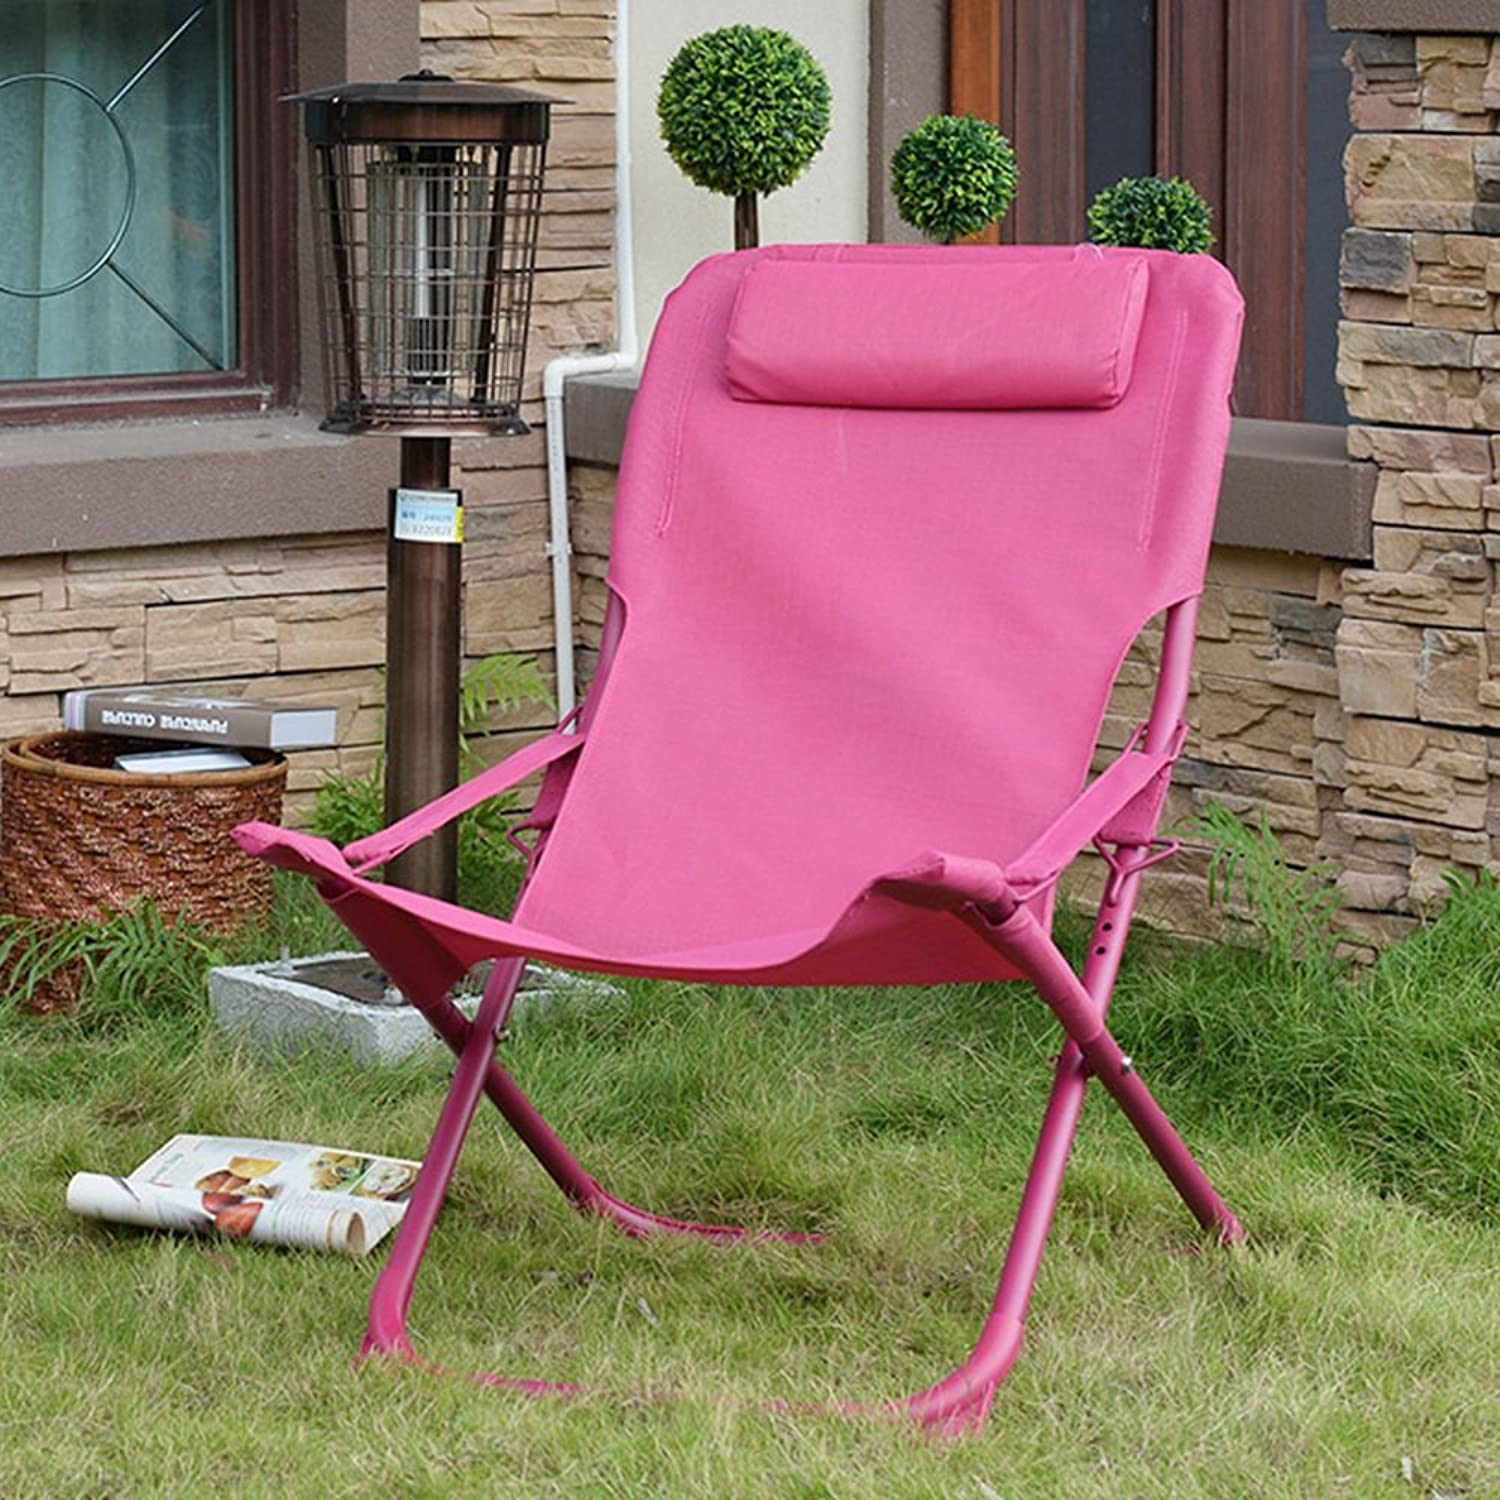 GWDJ Lounger Deck Chairs Simple Pure color Lightweight Folding Chair Casual Office Practical Siesta Backrest Chair Outdoor Portable Beach Chair Balcony Garden Lounge Chair Relaxer Recliner